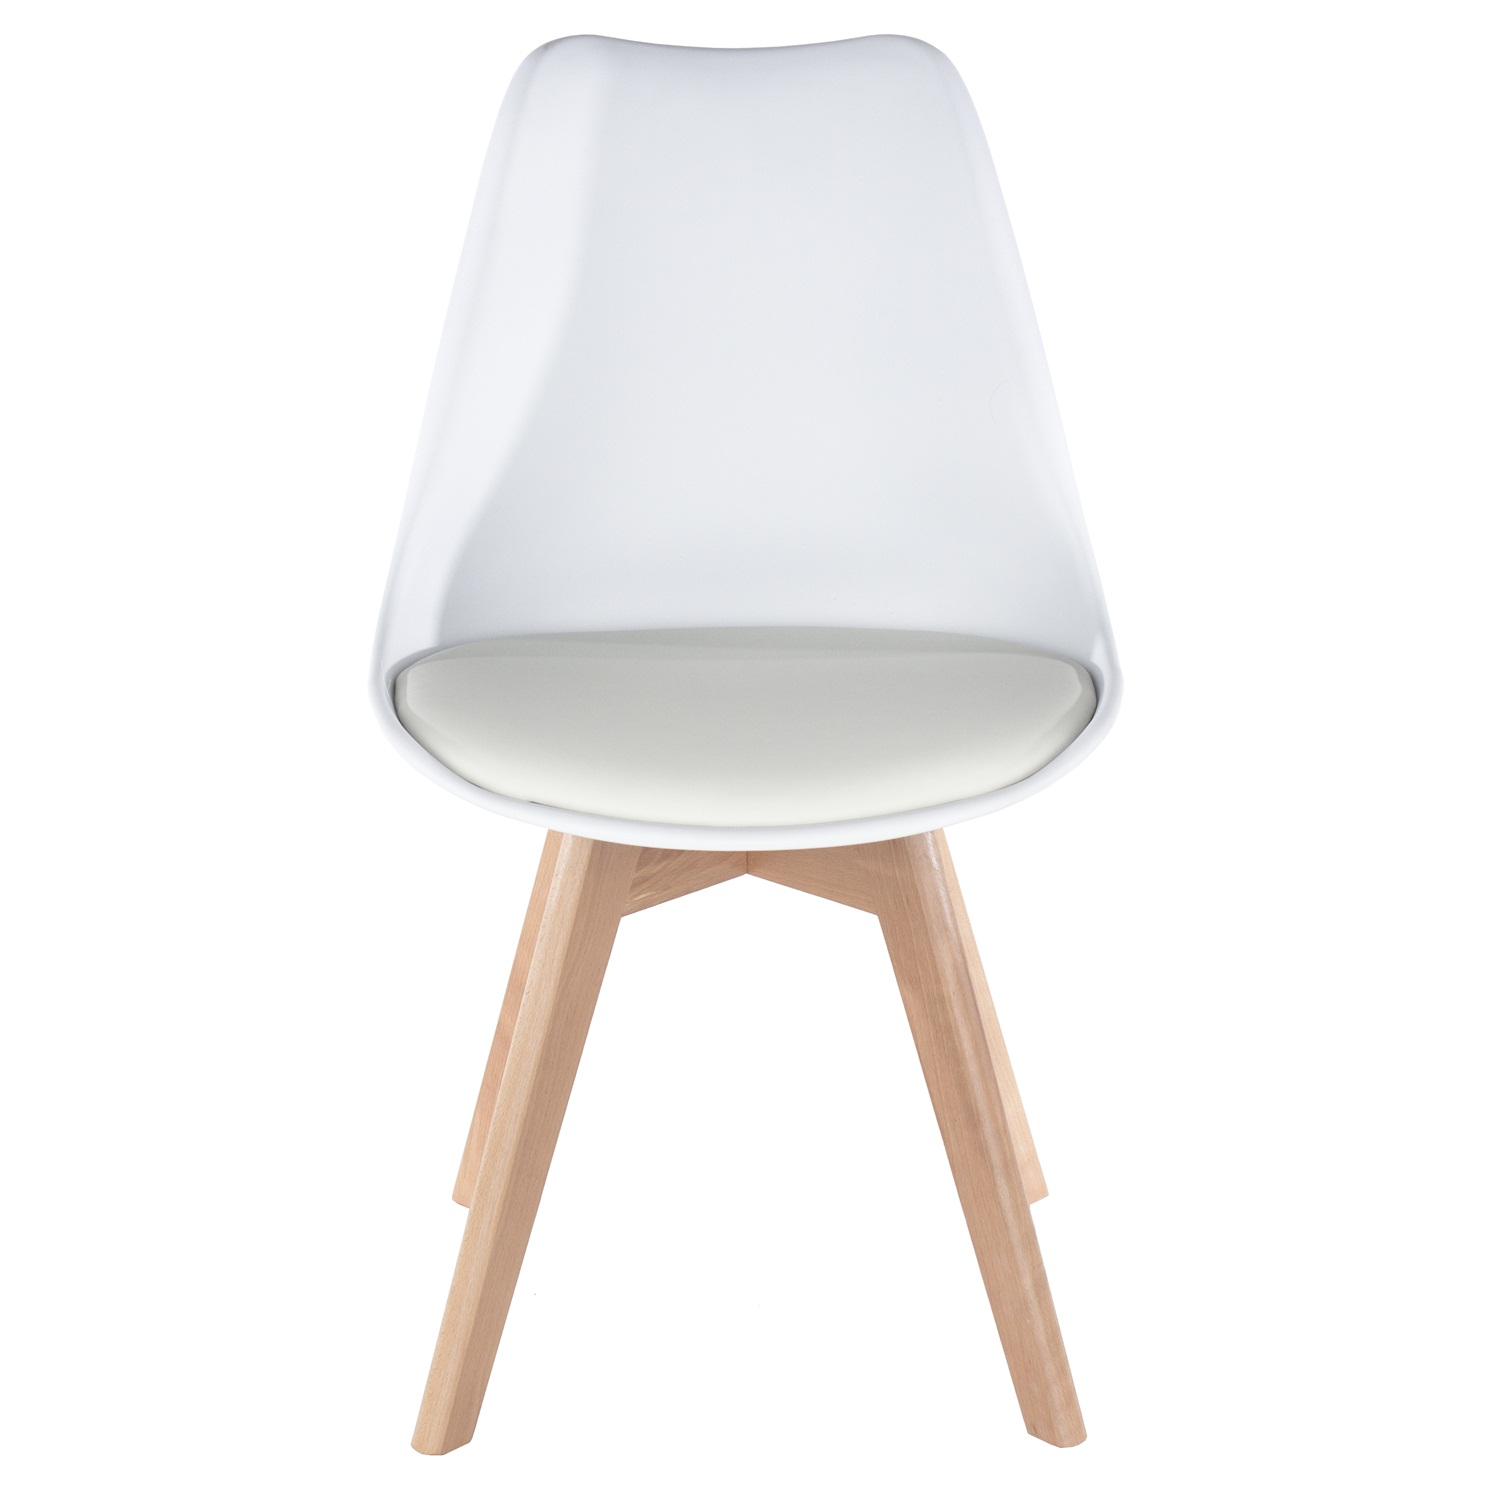 white upholstered plastic chair, wood legs (order in pairs)